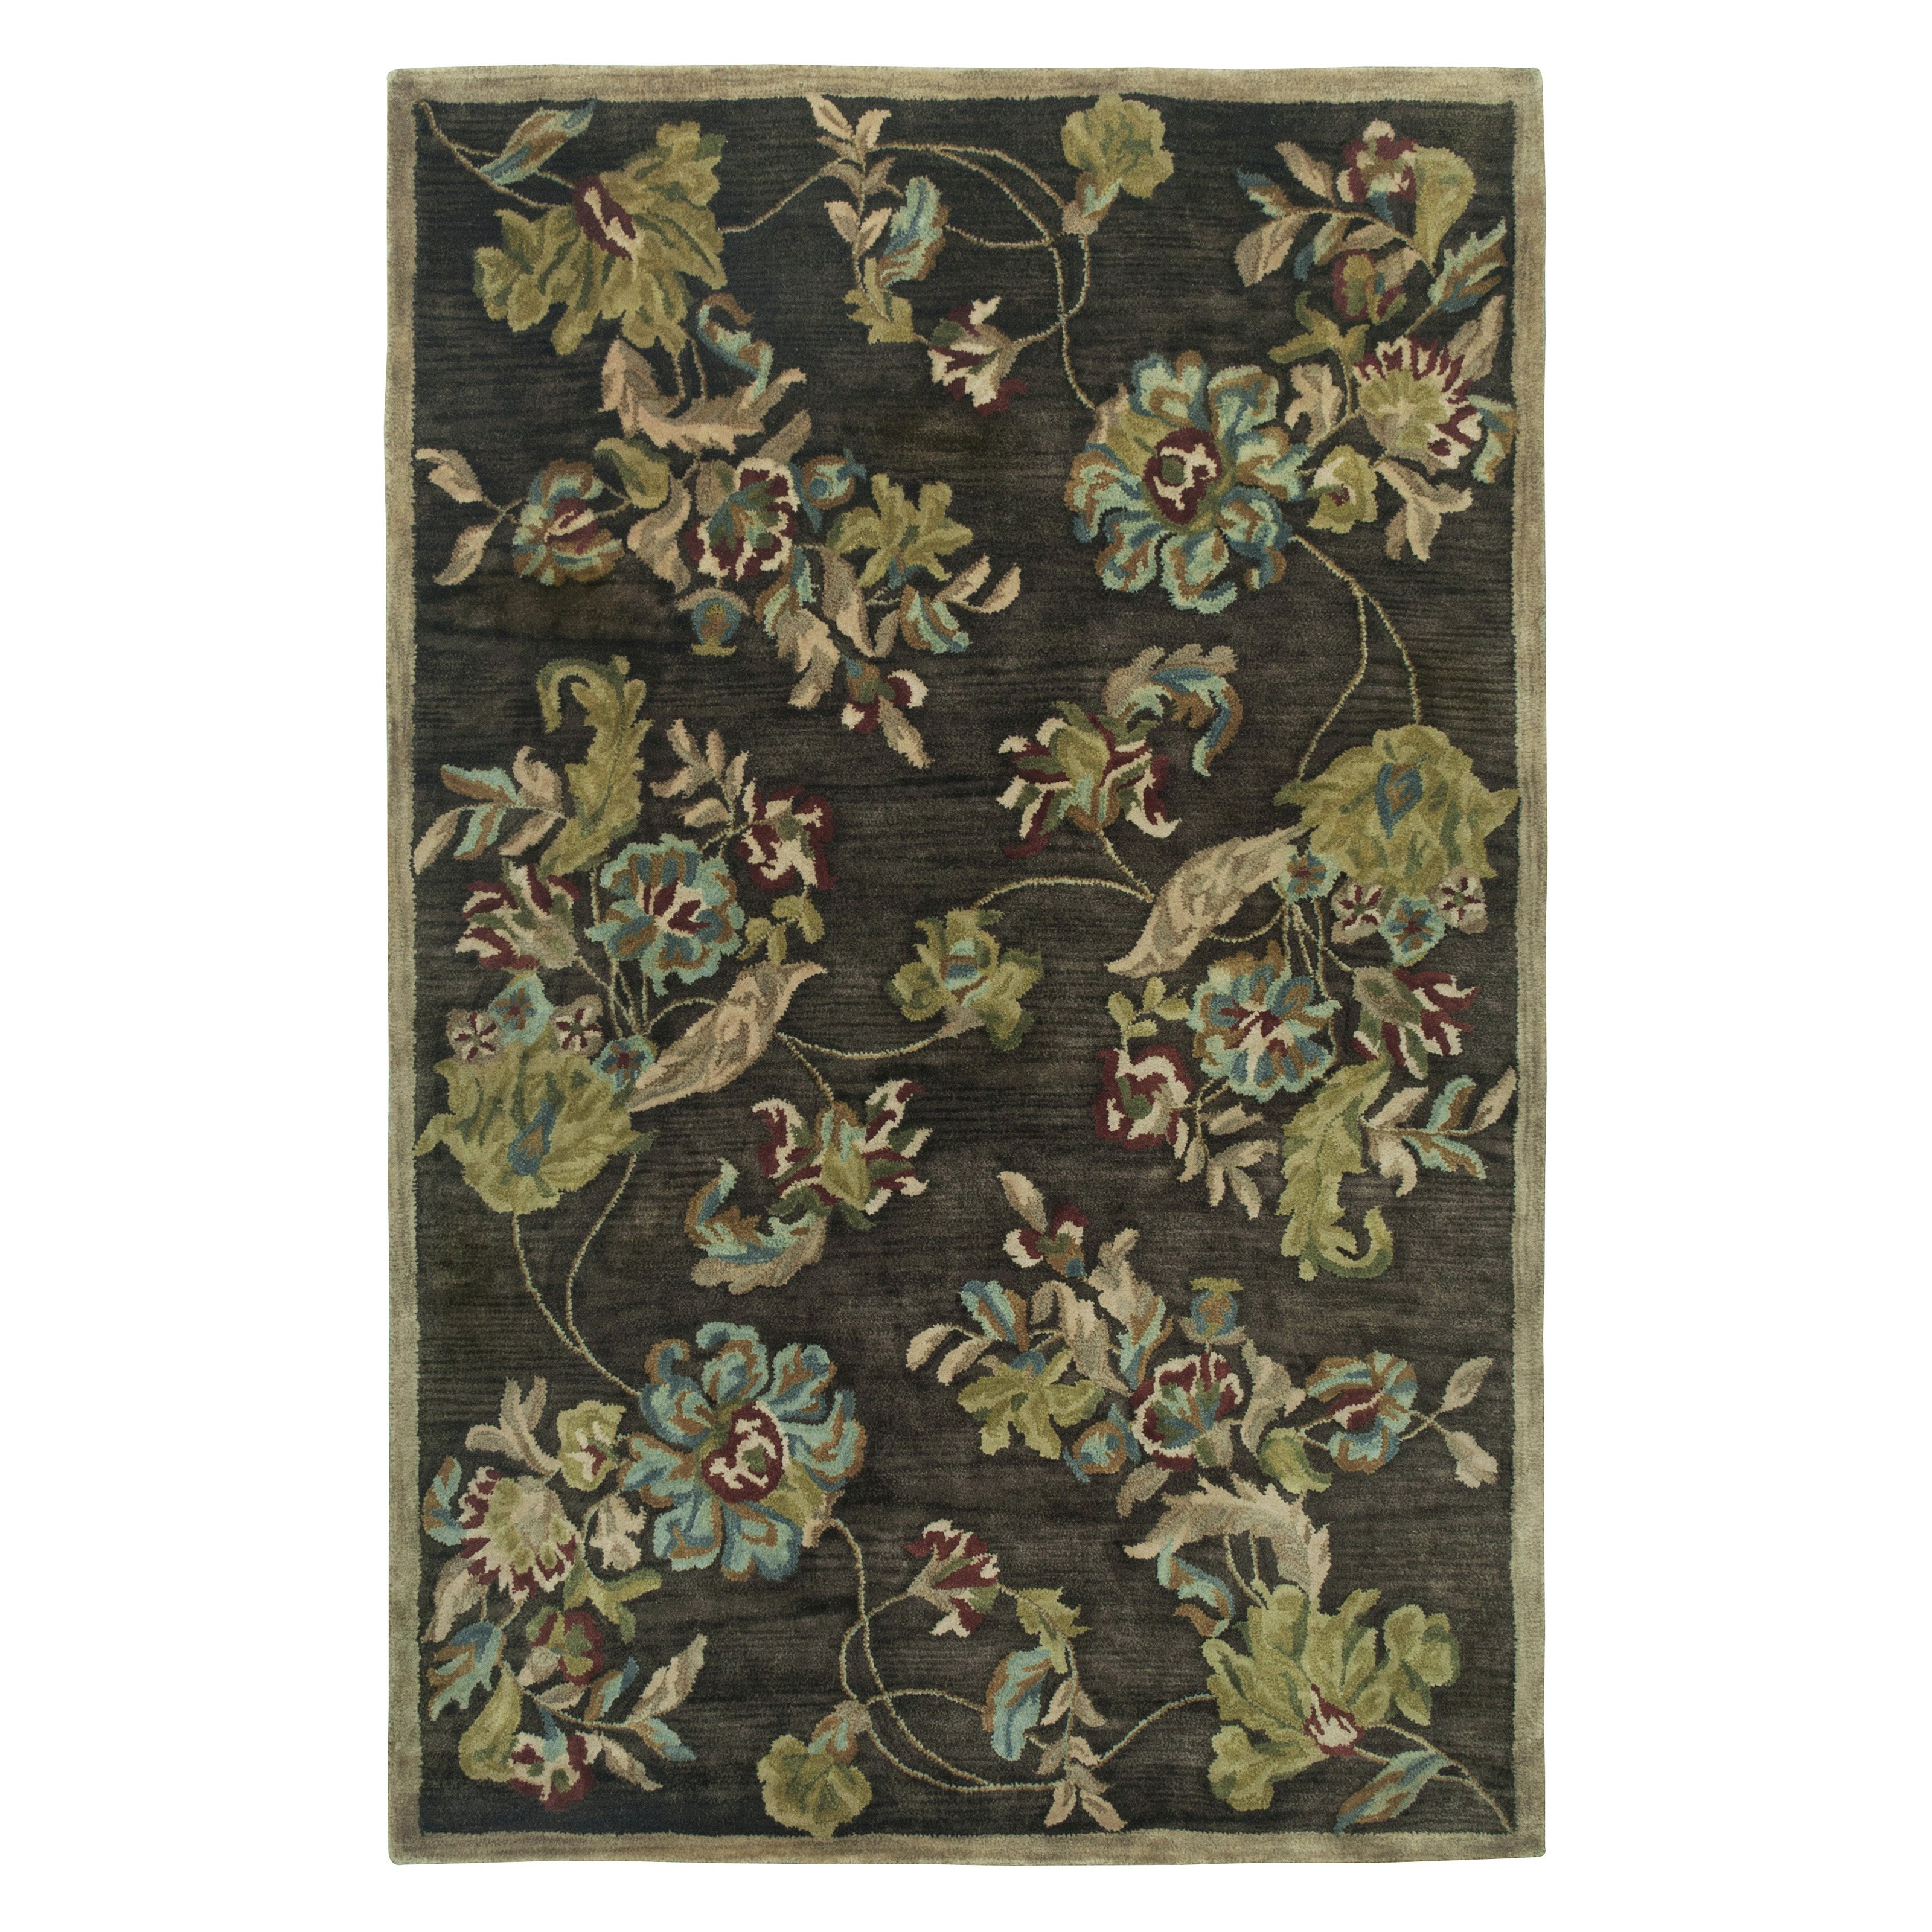 LR Resources Majestic HN9354 Rug - 3.5 x 5.5 ft.